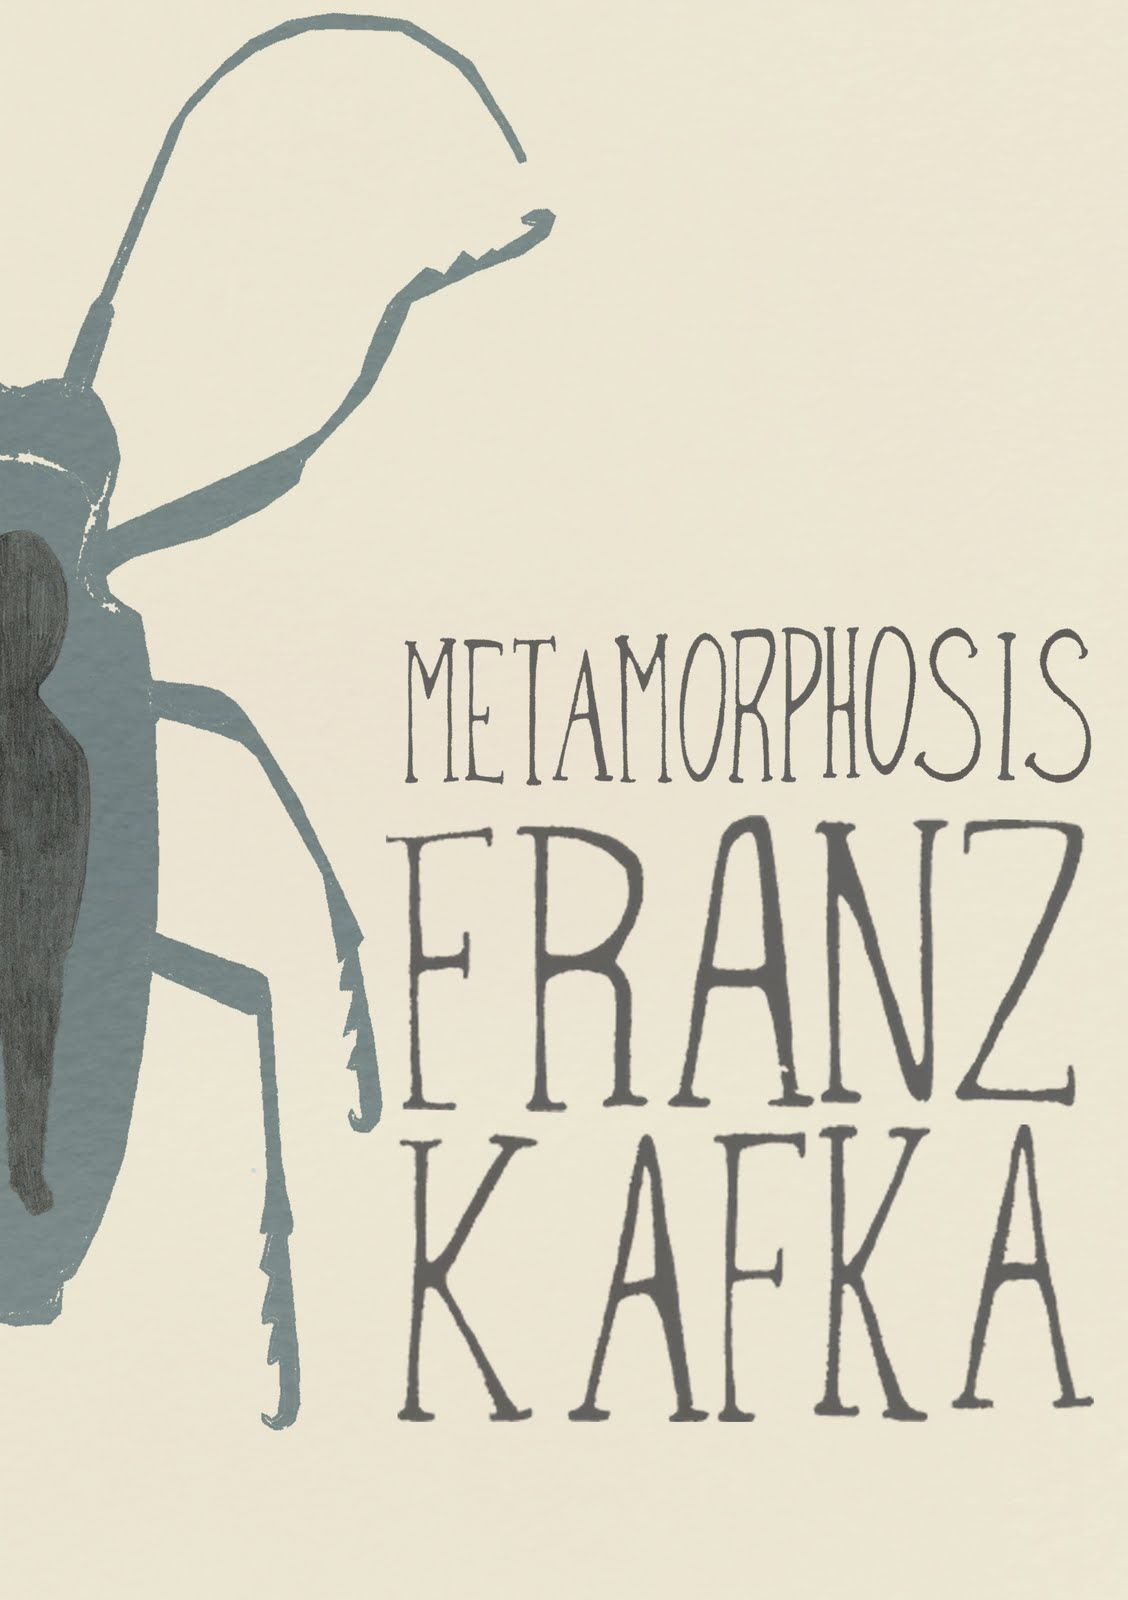 franz kafkas the metamorphosis and james baldwins Franz kafka's gregor samsa has undergone numerous metamorphoses in english: into a gigantic insect, a monstrous vermin, a monstrous cockroach, some sort of monstrous insect, and a monstrous bug  franz kafka's gregor samsa has undergone numerous metamorphoses in.